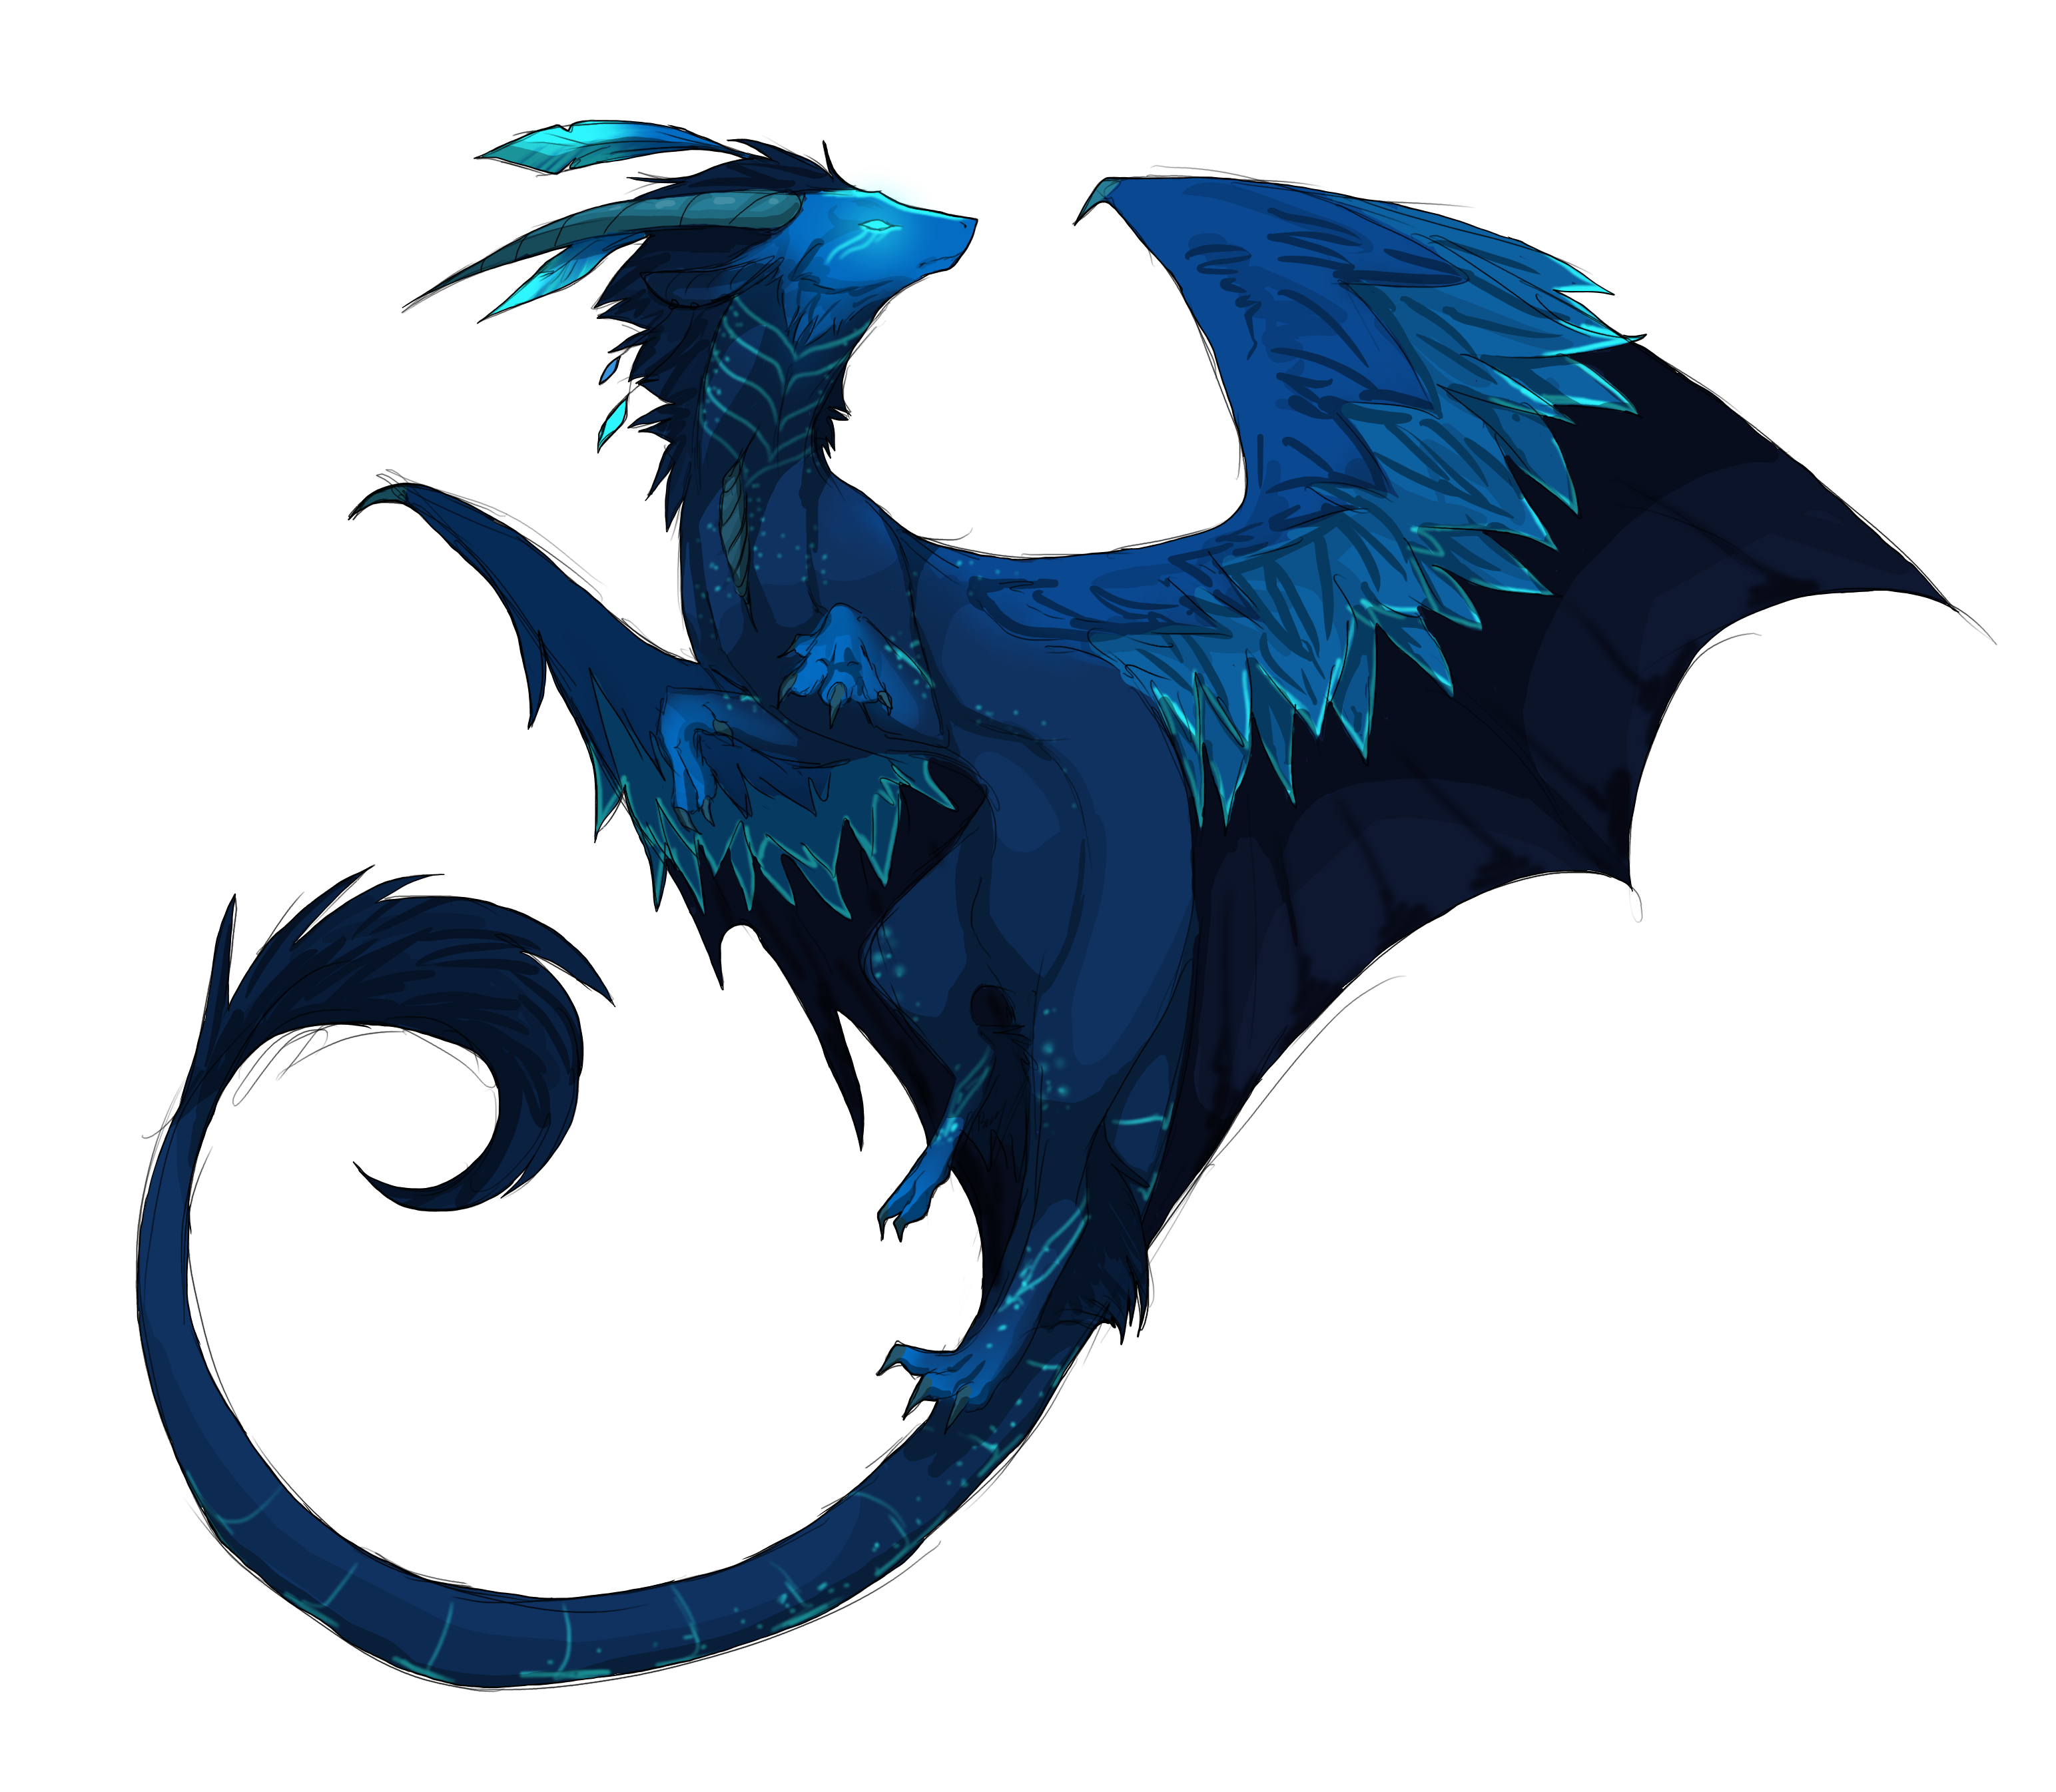 __blue_dragon___by_glowing_kitty-d748xck.png